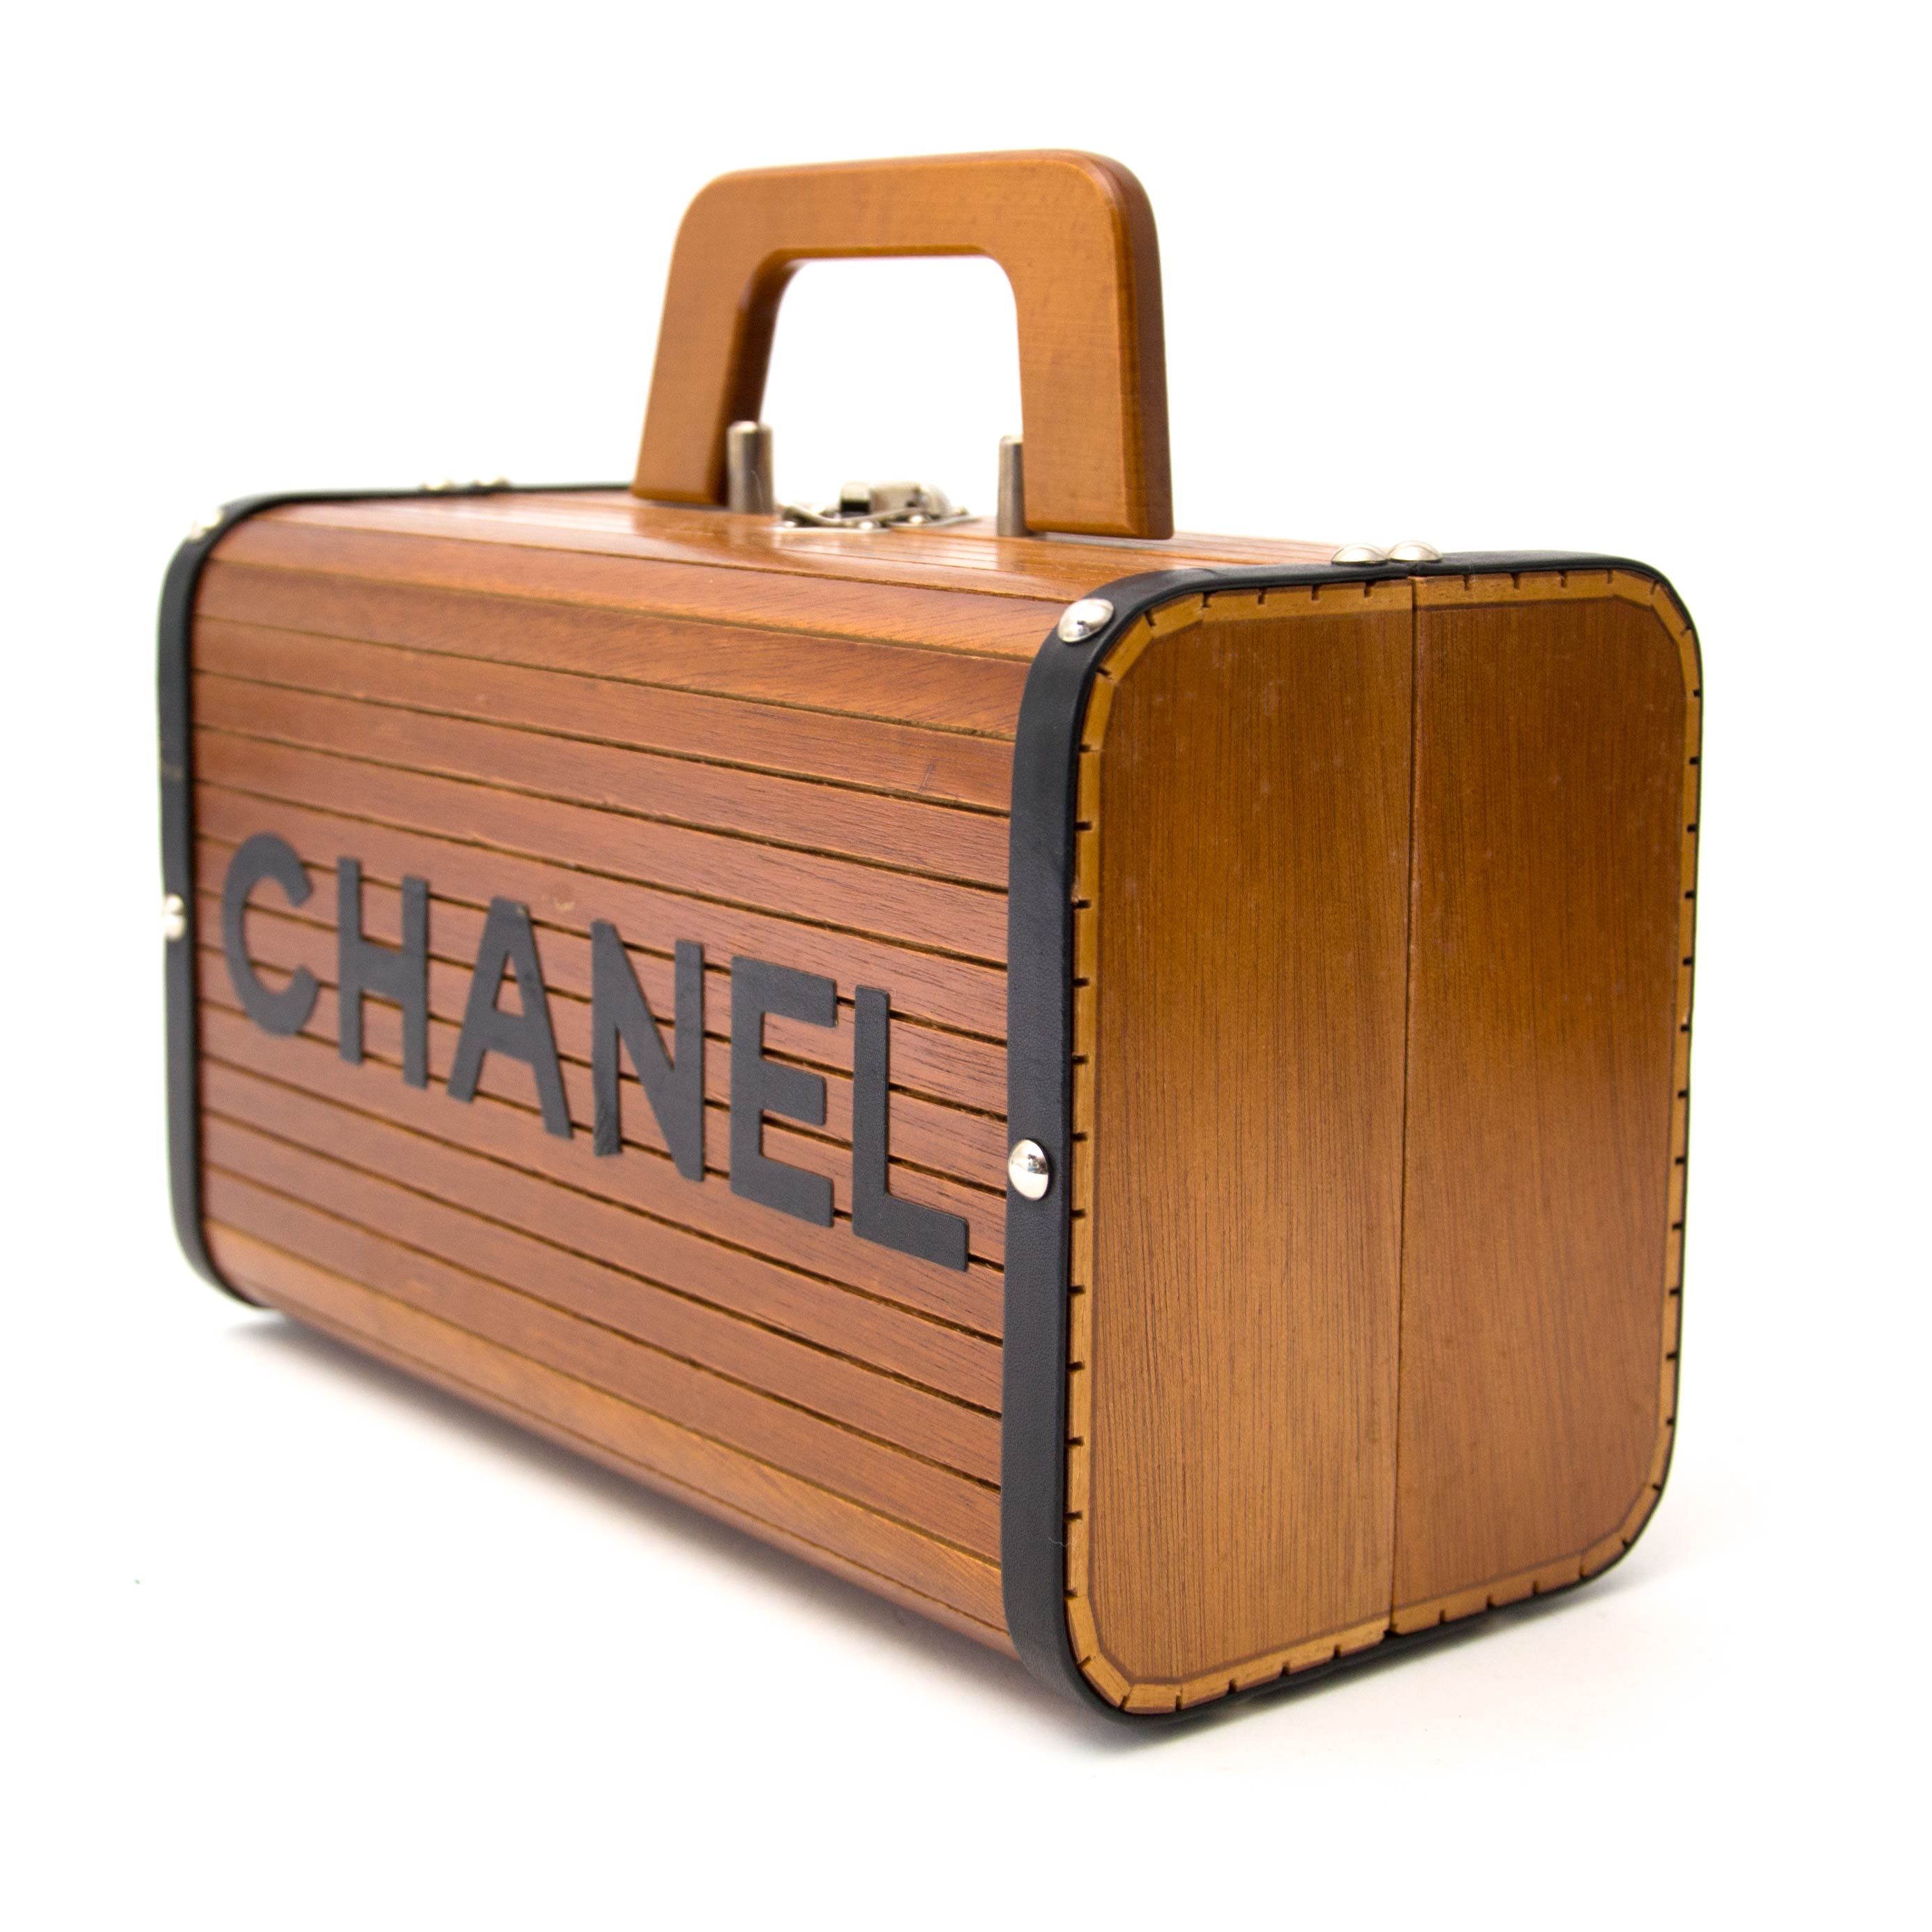 searching for a luxury Chanel Limited Wooden Leather Trunk Case Handbag online?